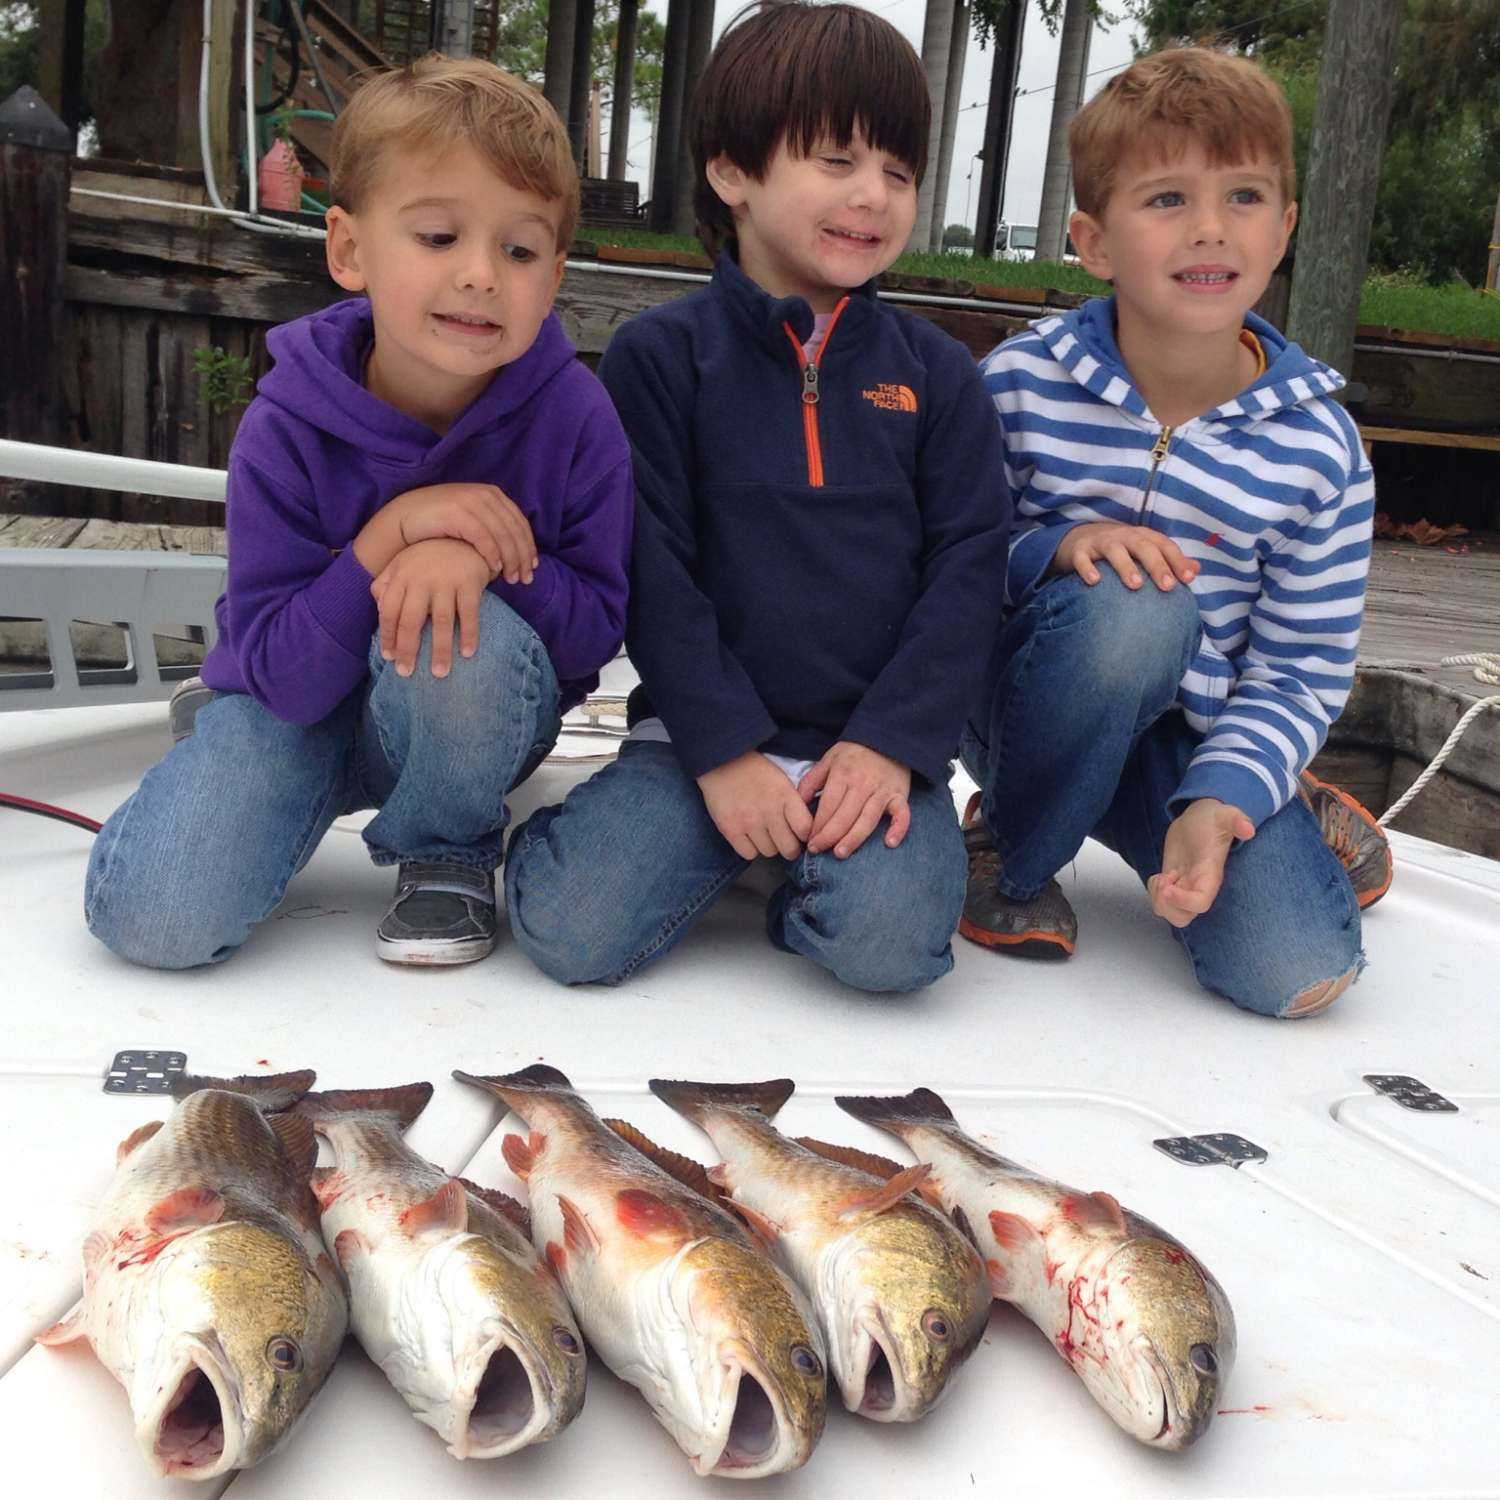 Title: 3 Cousins 214 Tournament - On board their Sportsman Tournament 214 Bay Boat - Location: Metairie, Louisiana. Participating in the Photo Contest #SportsmanOctober2015